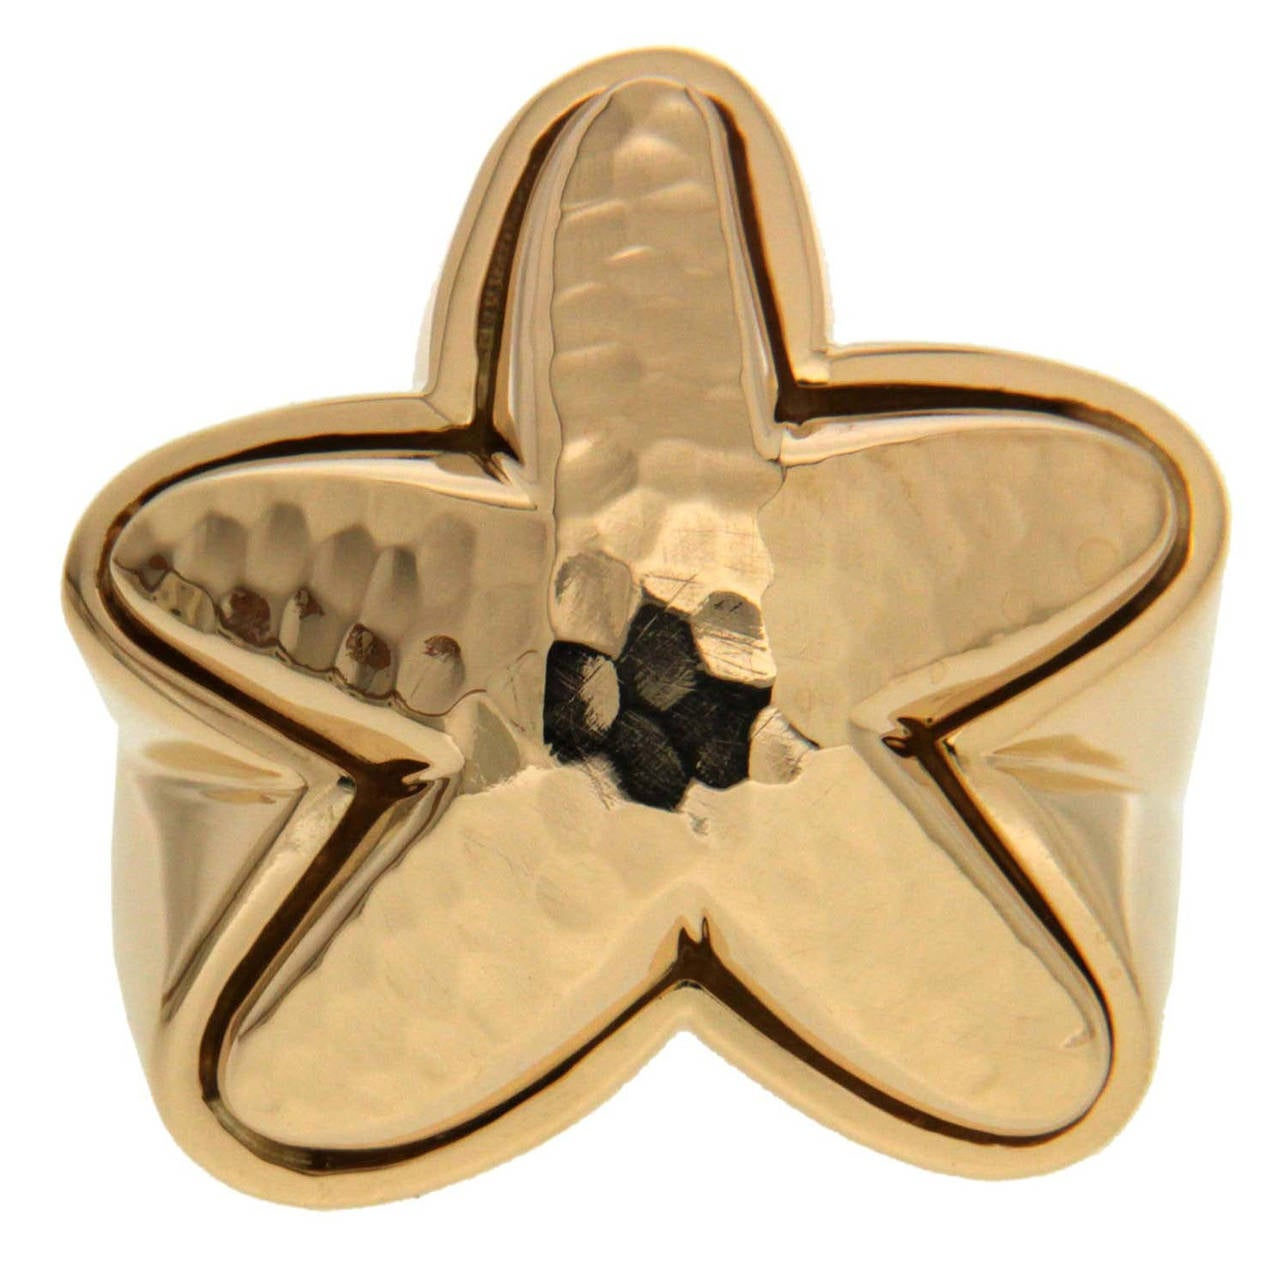 Gold Starfish Ring with Textured Finish For Sale